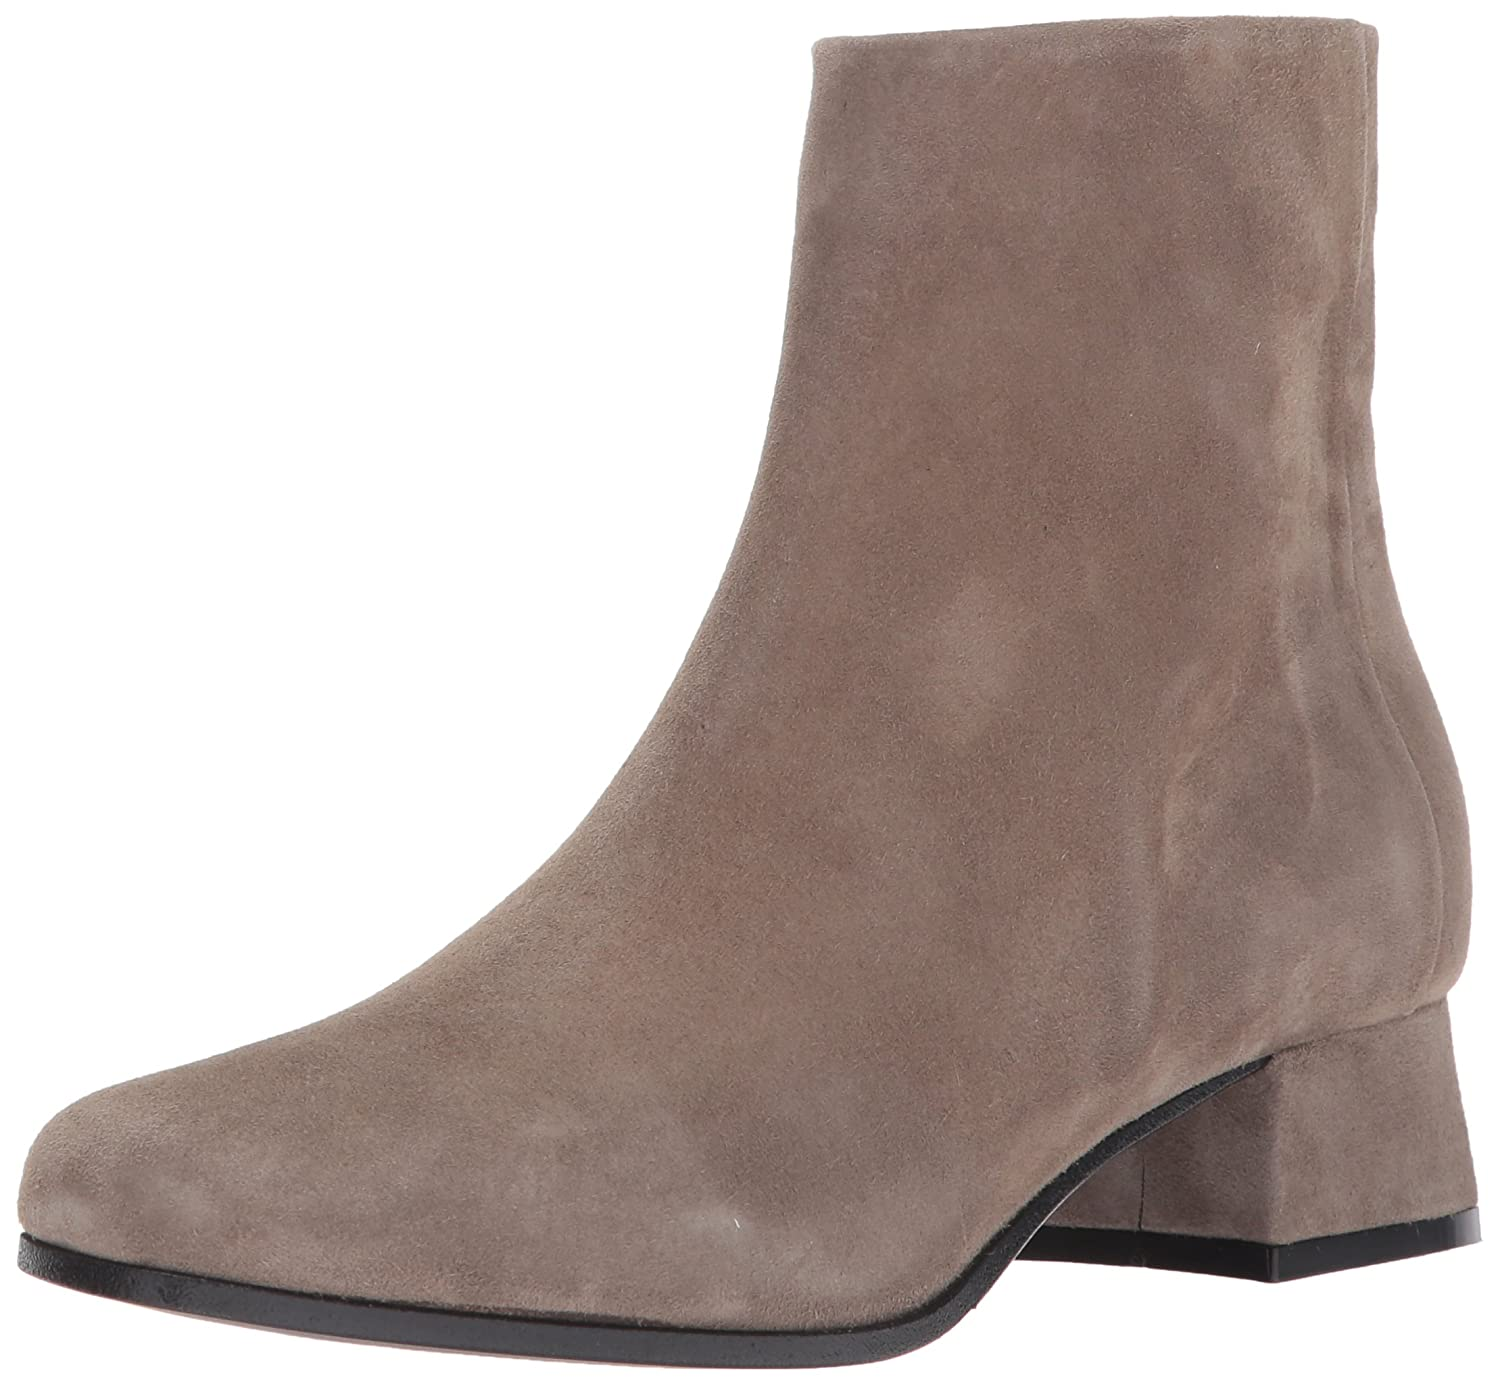 Cordani Women's Bessie Ankle Boot B06Y2JT9Q3 37 M EU (6.5-7 US)|Taupe Suede